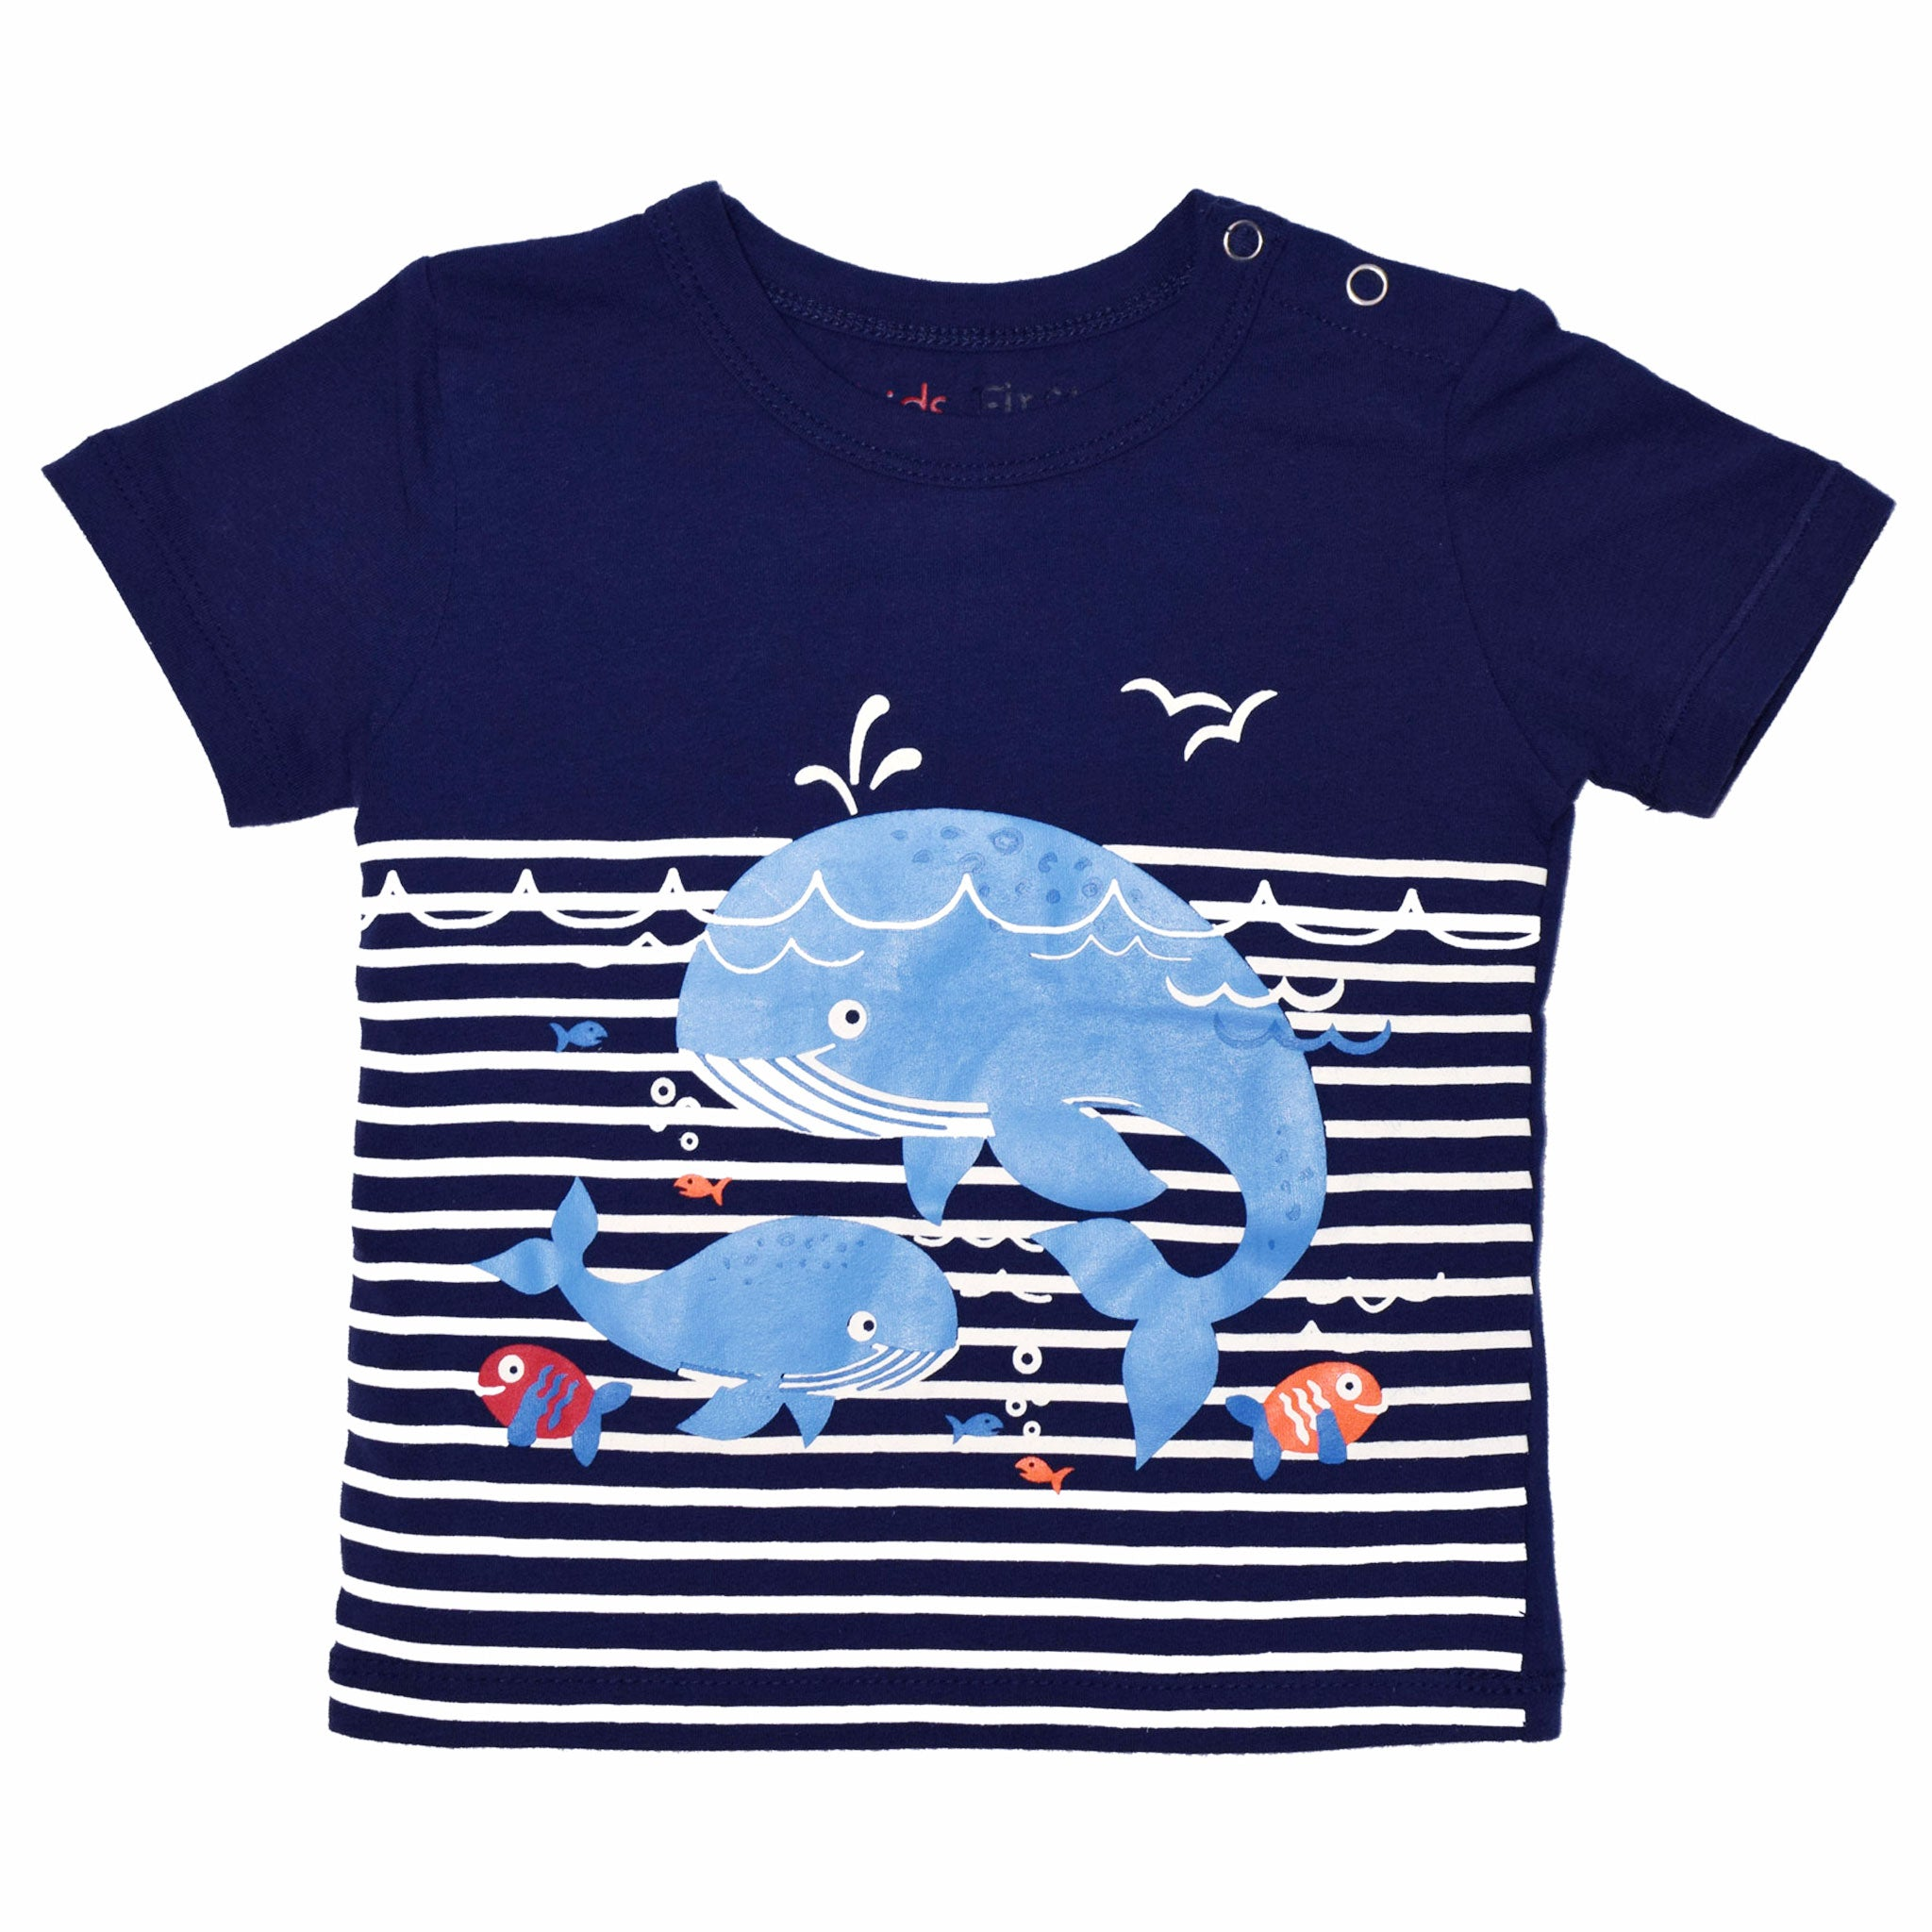 BOYS' S/S PRINTED TEE - NAVY / WHALES UNDER WATER